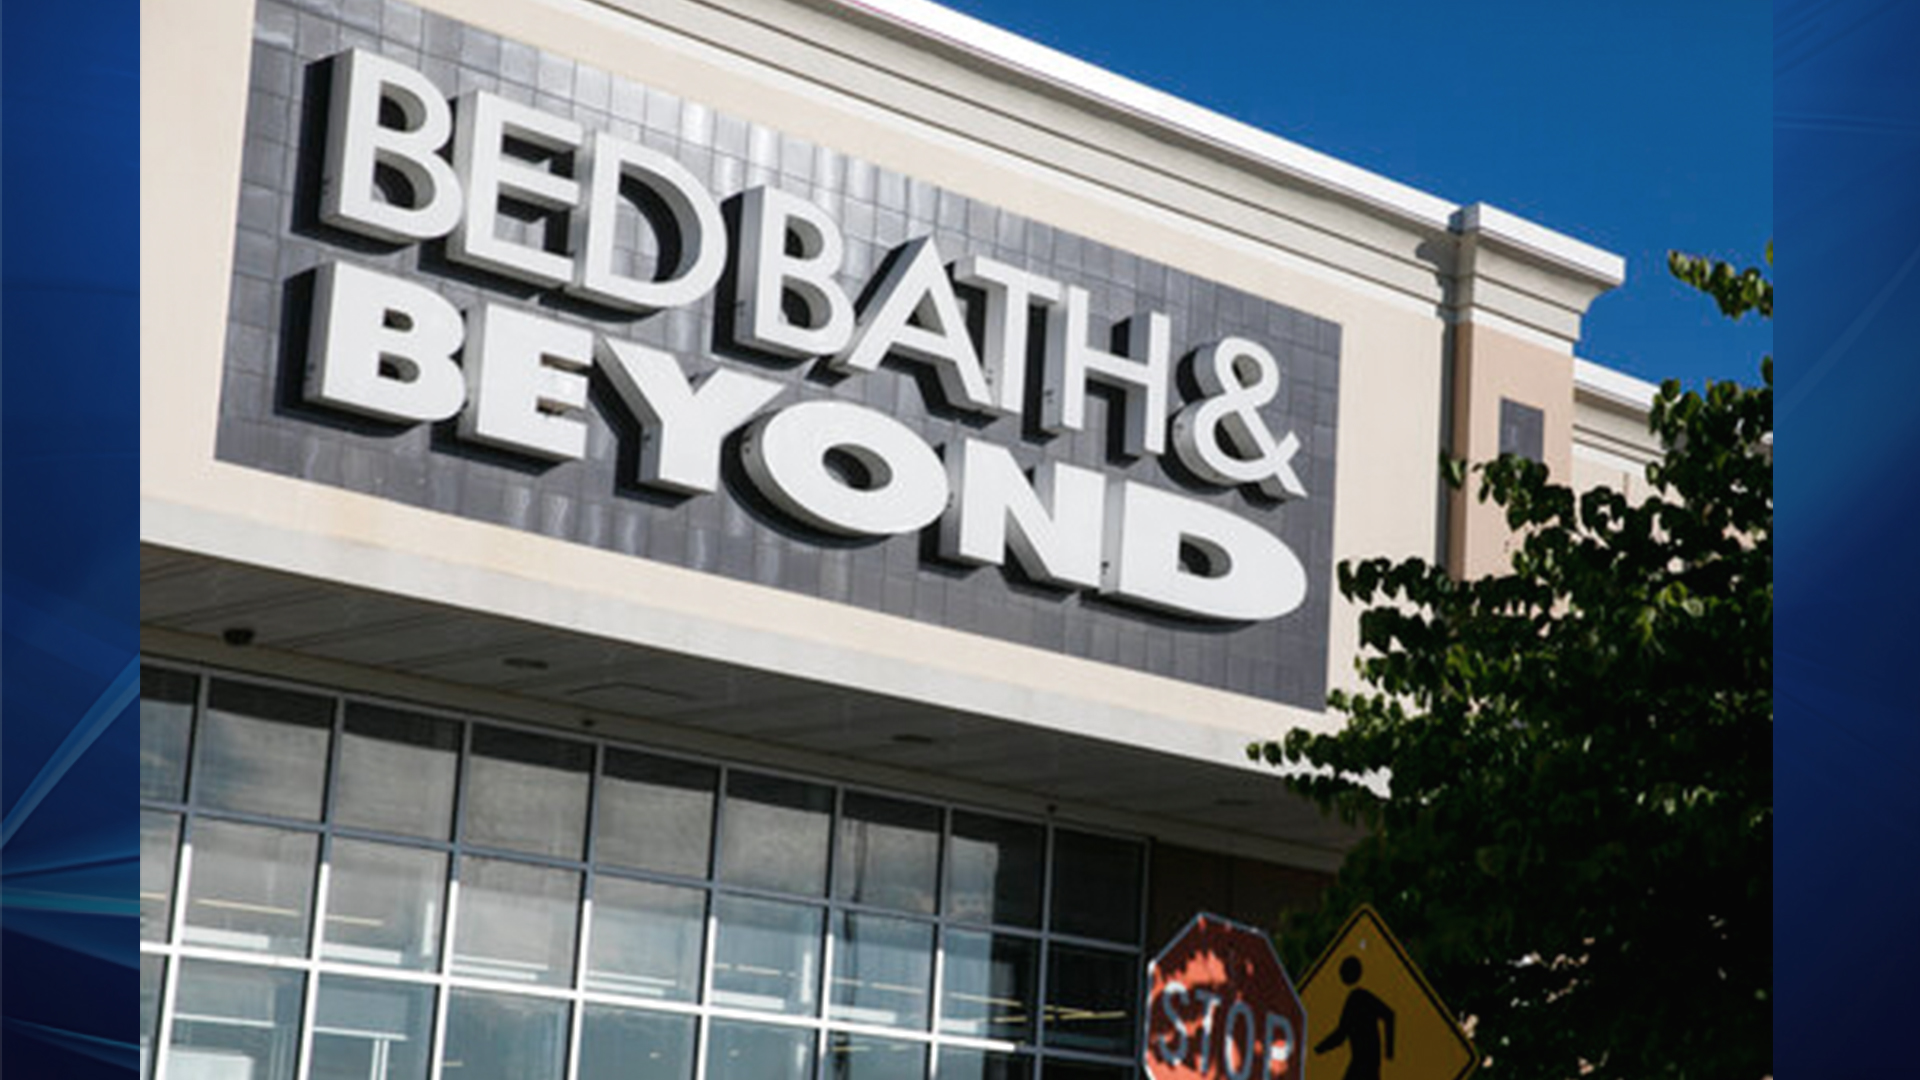 Bed Bath Beyond Closing All Stores Until April Due To Coronavirus Concerns Wlns 6 News